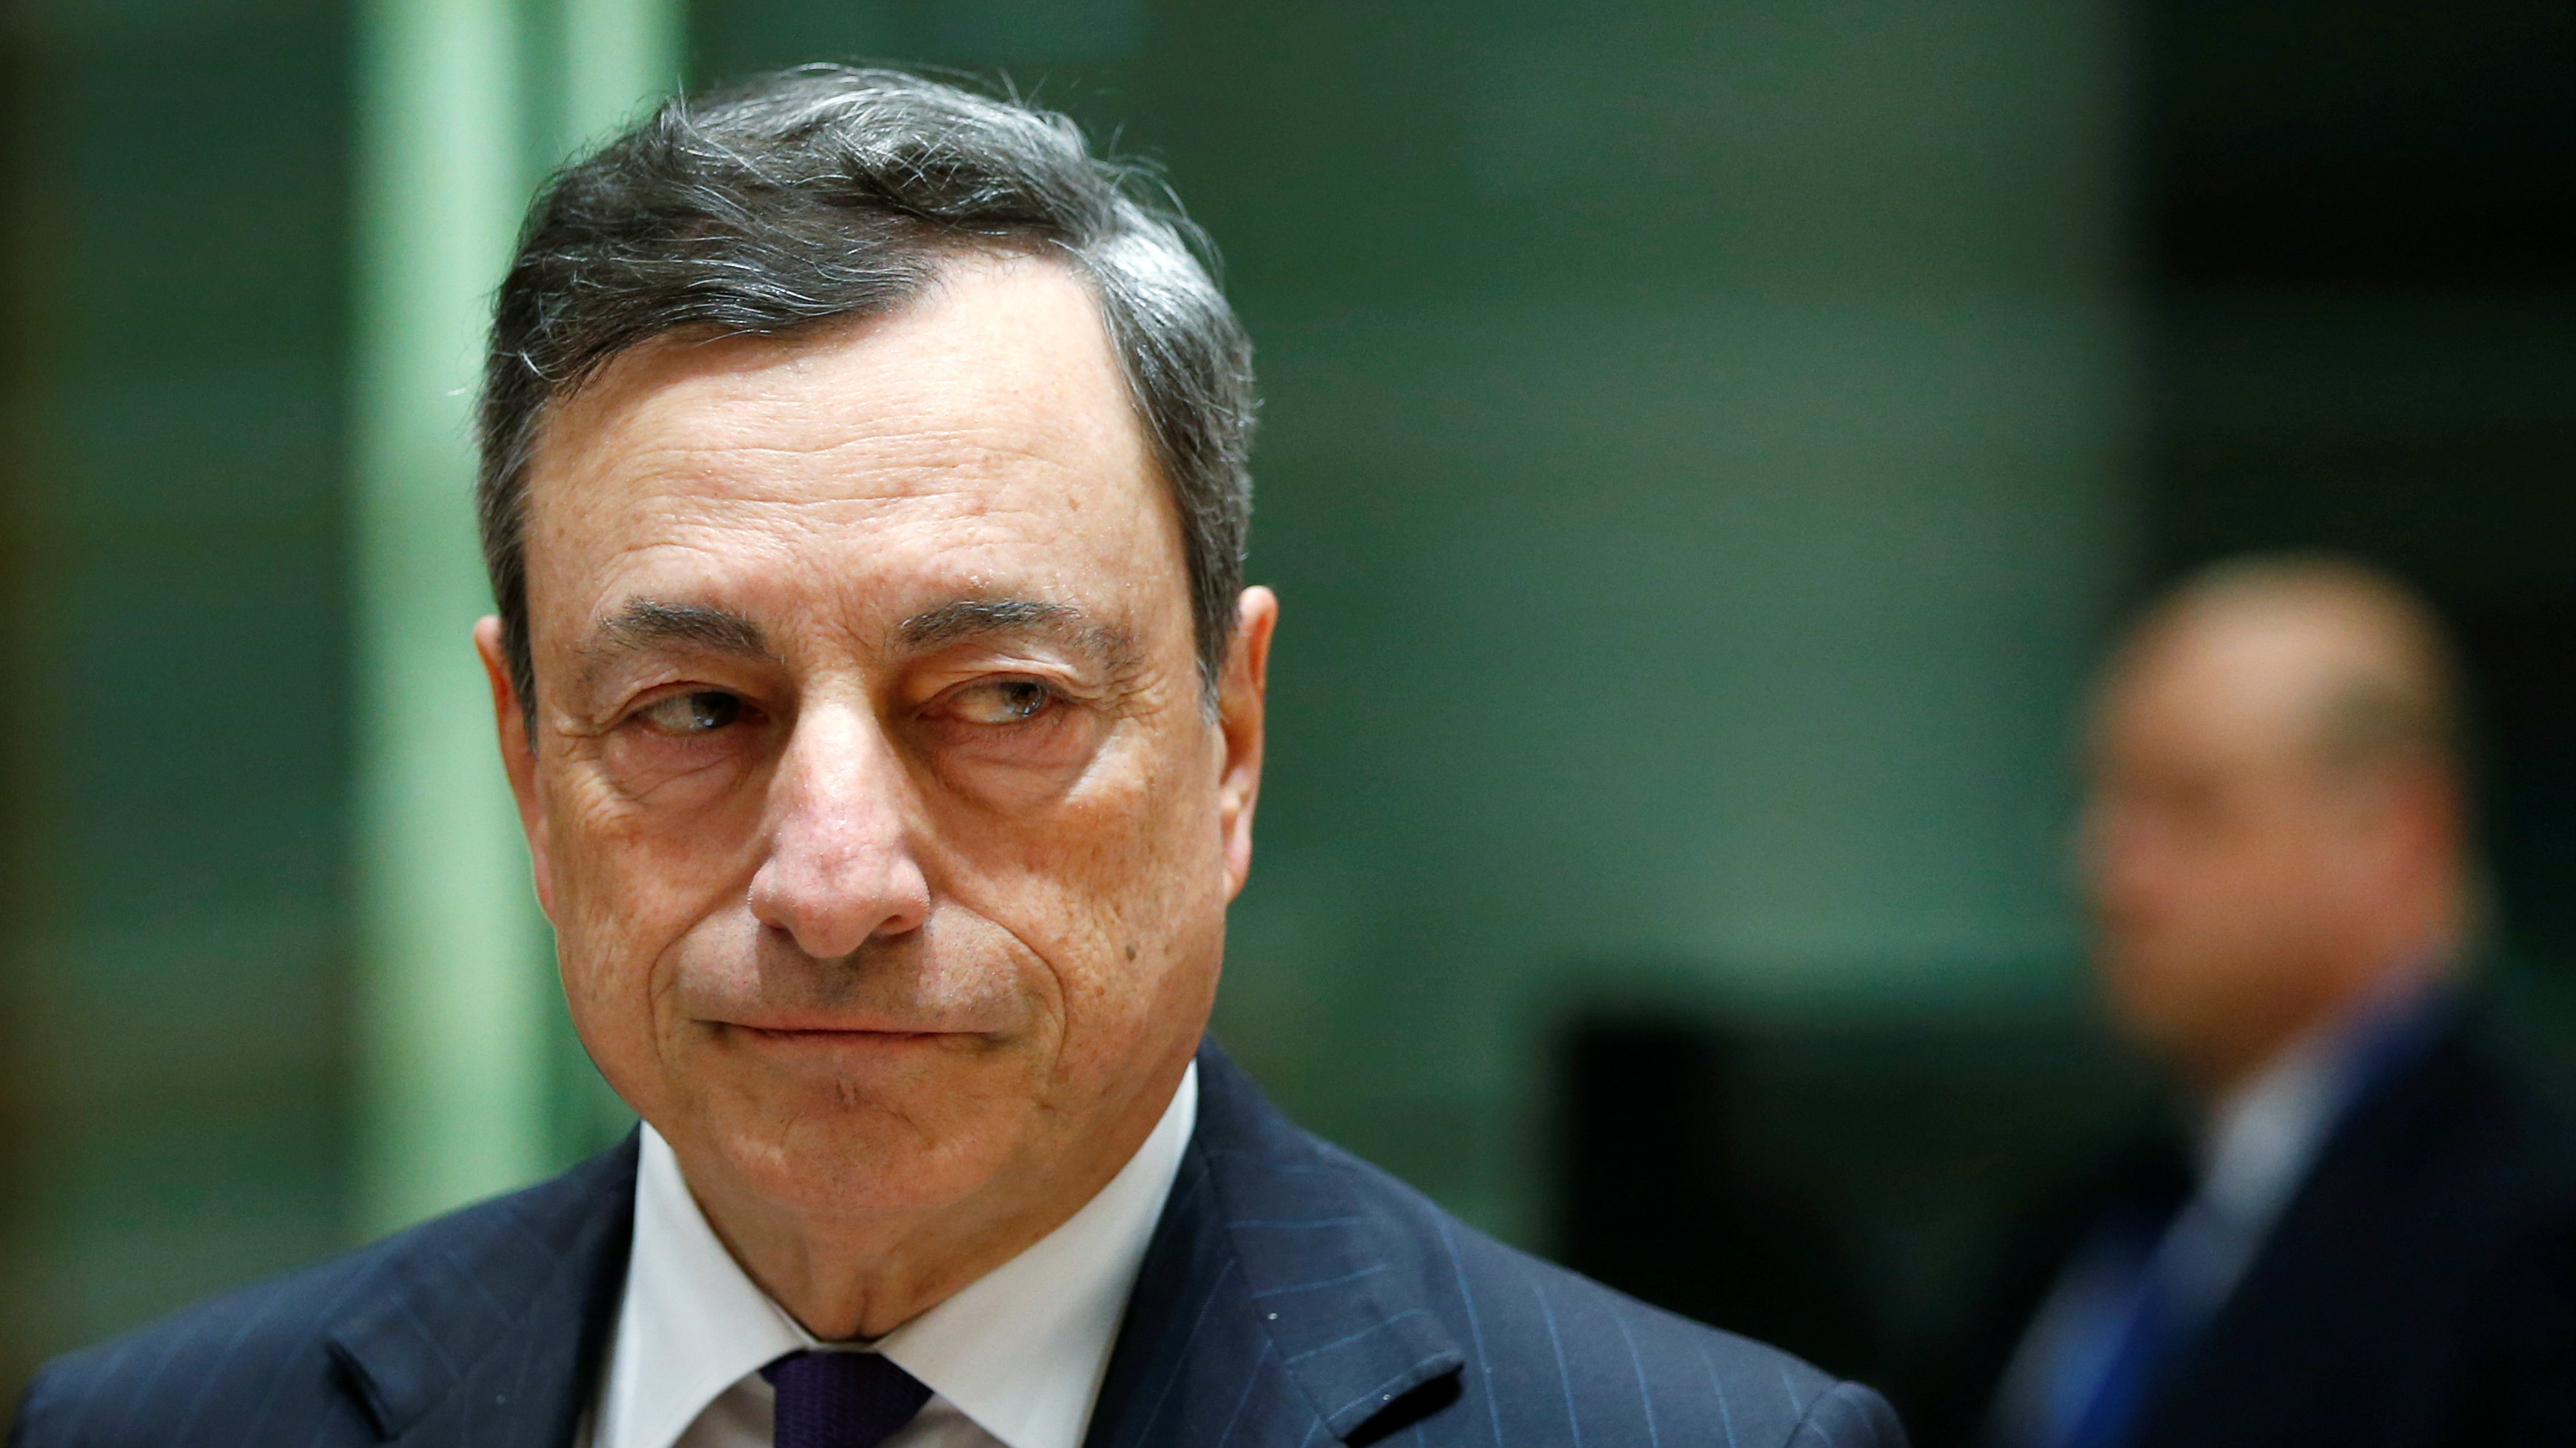 European Central Bank (ECB) President Mario Draghi attends a eurozone finance ministers meeting in Brussels, Belgium February 20, 2017.